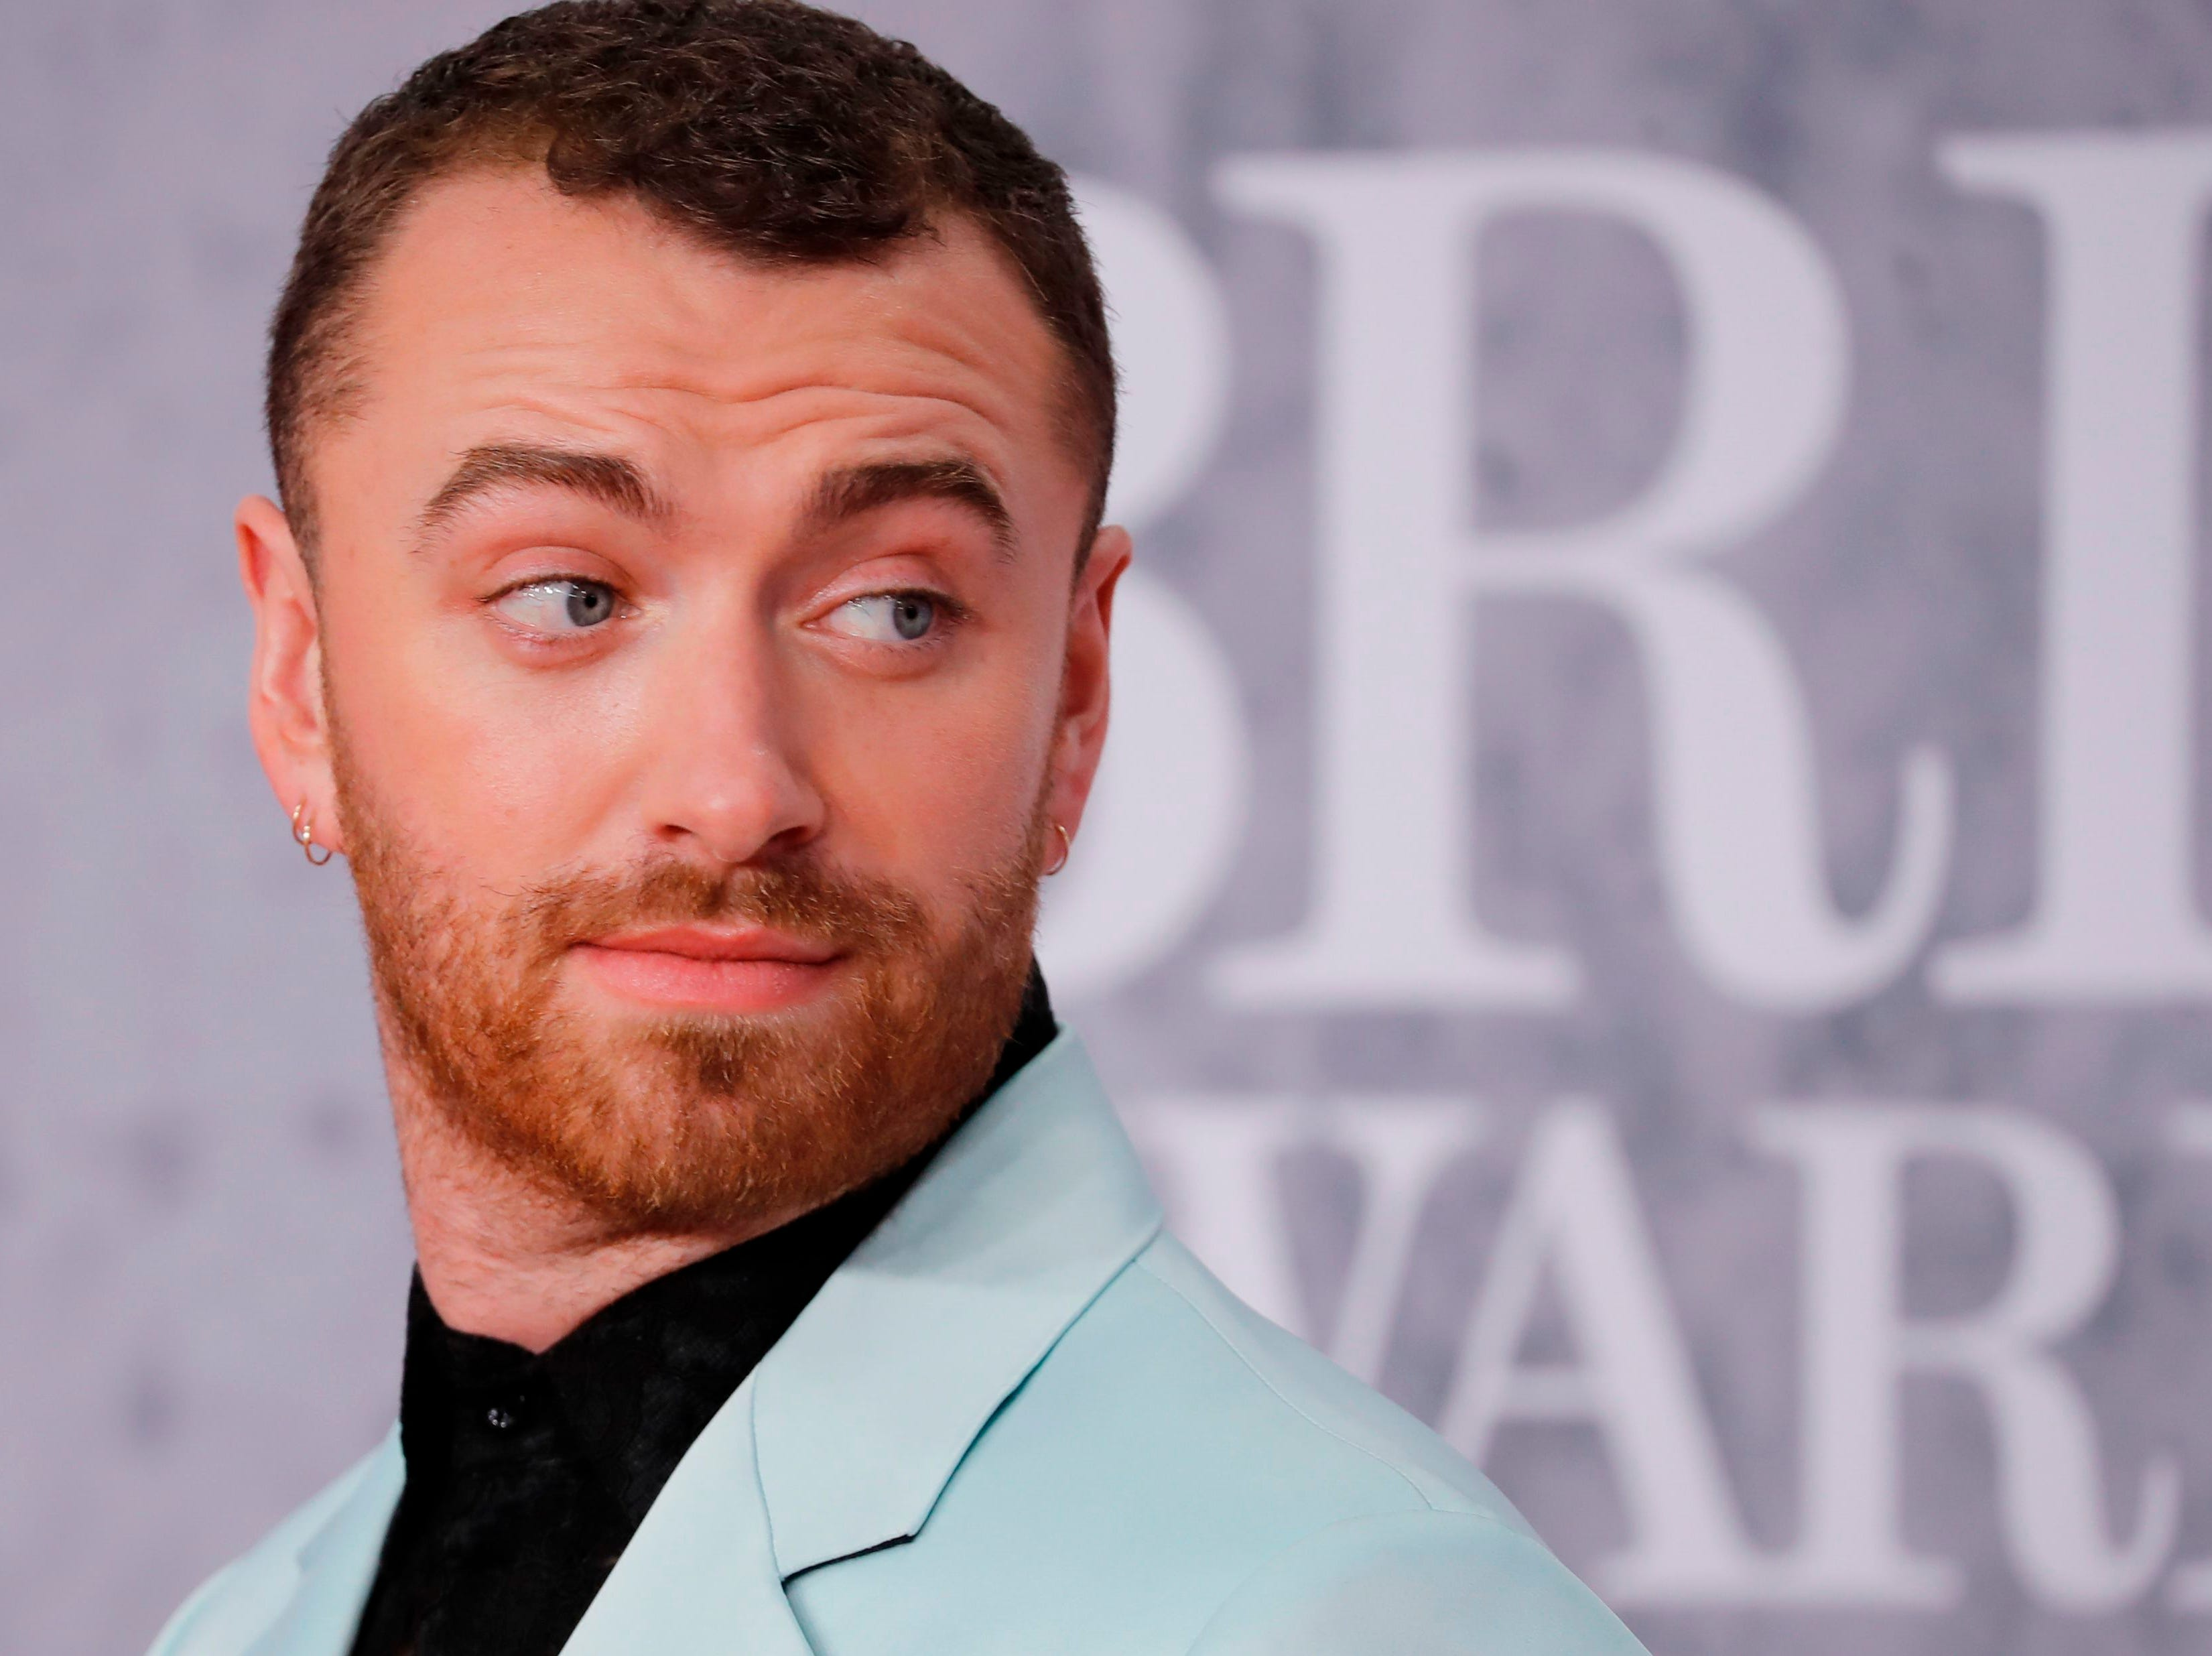 British singer-songwriter Sam Smith poses on the red carpet on arrival for the BRIT Awards 2019 in London on February 20, 2019. (Photo by Tolga AKMEN / AFP) / RESTRICTED TO EDITORIAL USE  NO POSTERS  NO MERCHANDISE NO USE IN PUBLICATIONS DEVOTED TO ARTISTSTOLGA AKMEN/AFP/Getty Images ORIG FILE ID: AFP_1DO0WF